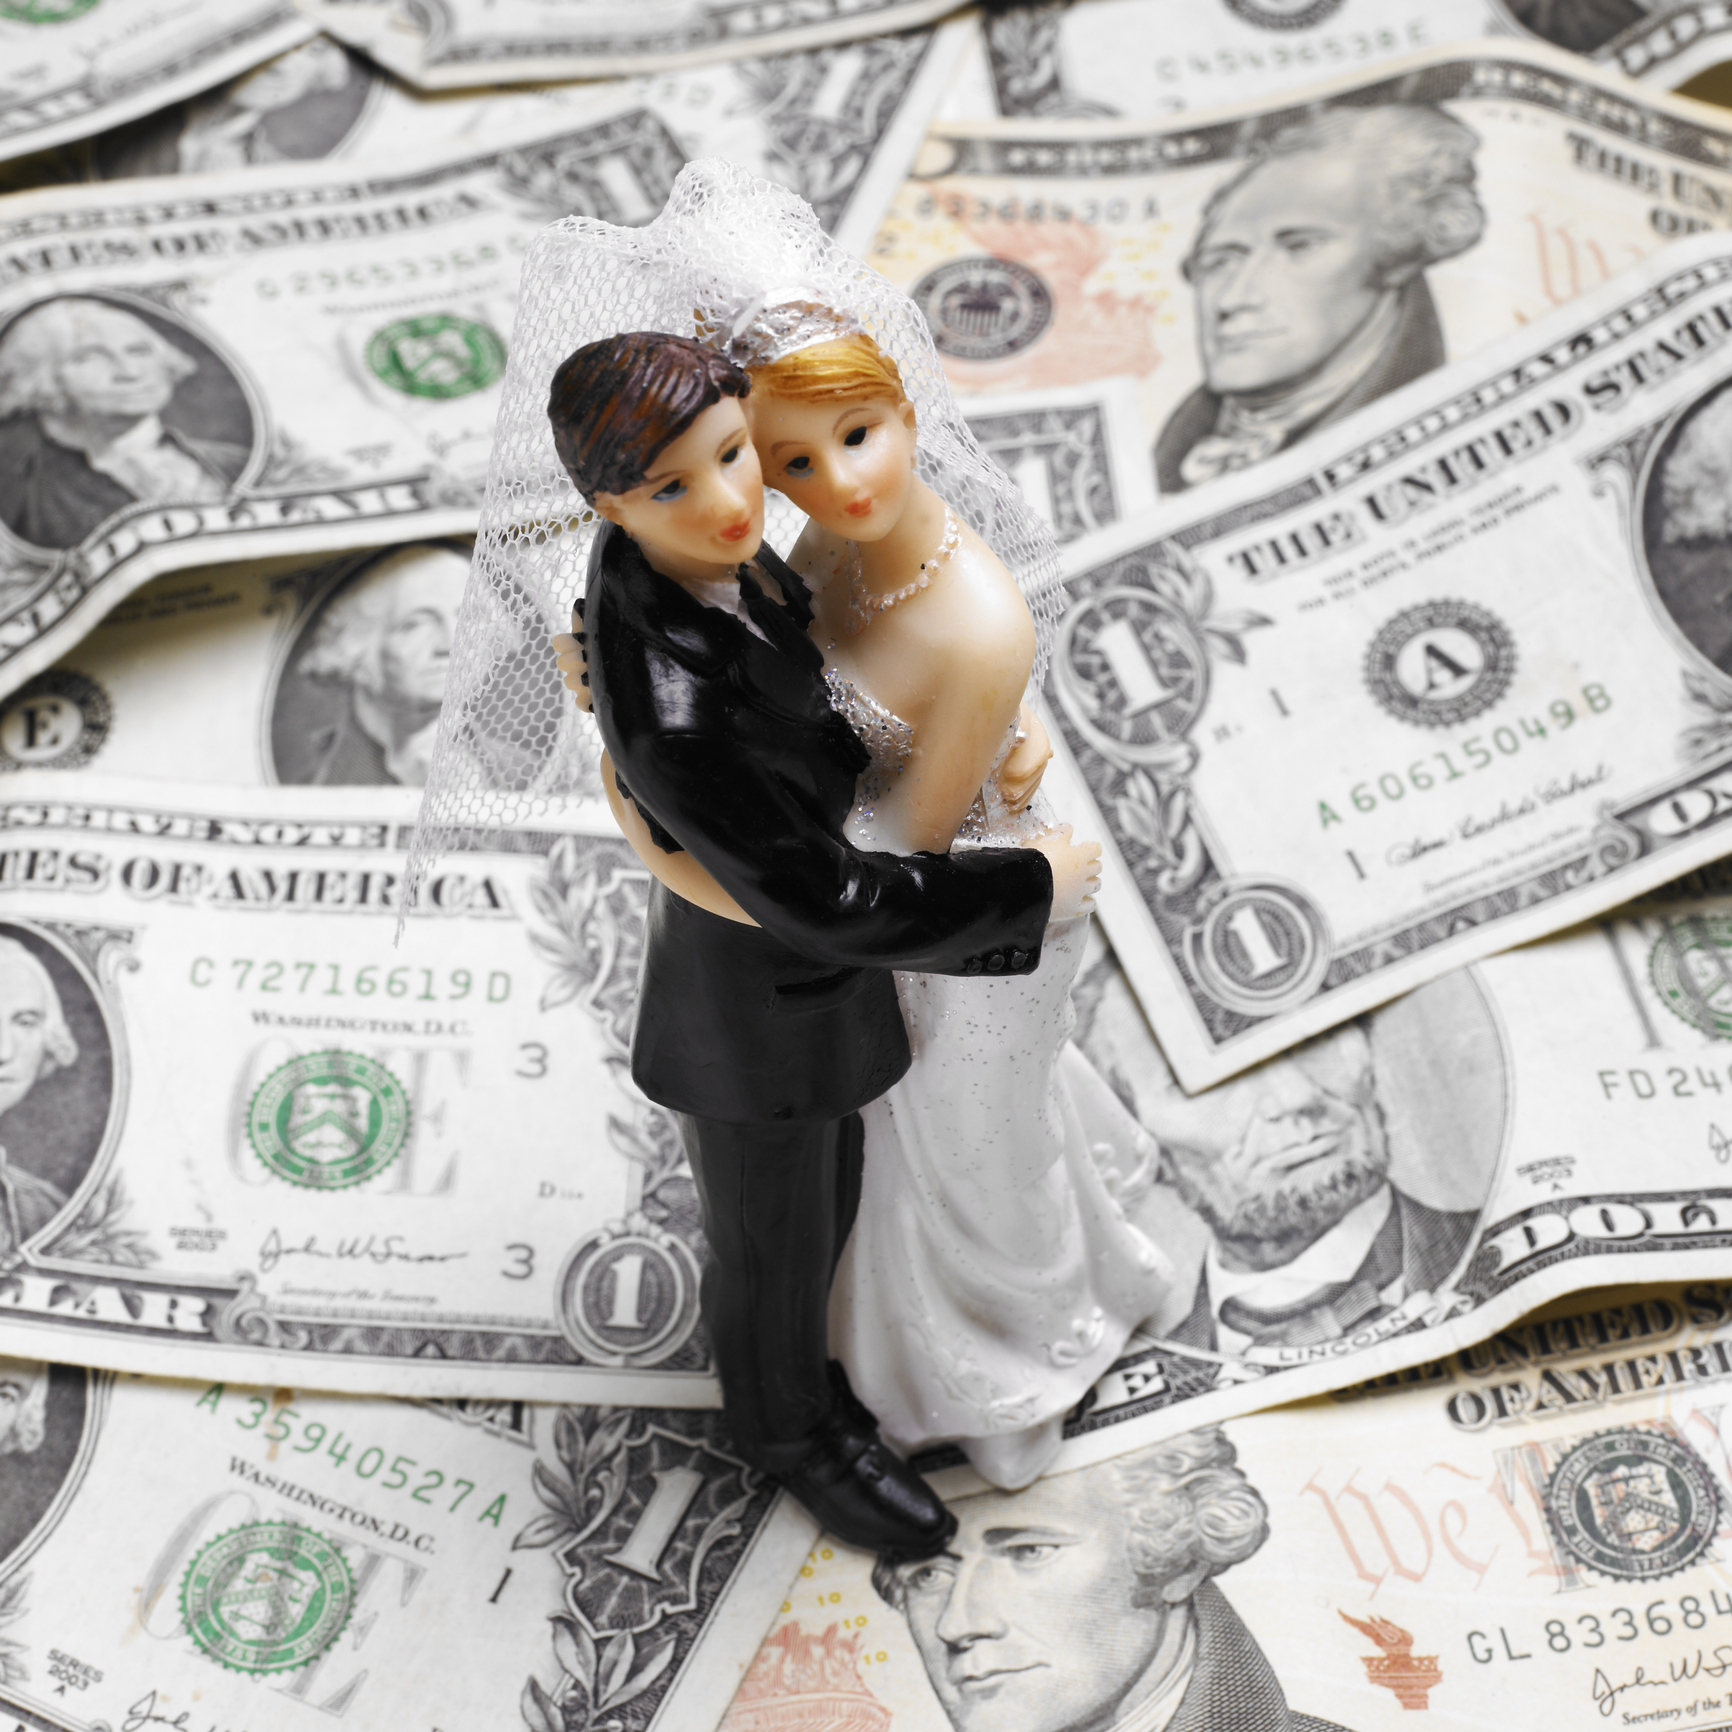 Typical Cash Wedding Gift: How Much Money To Give At A Wedding